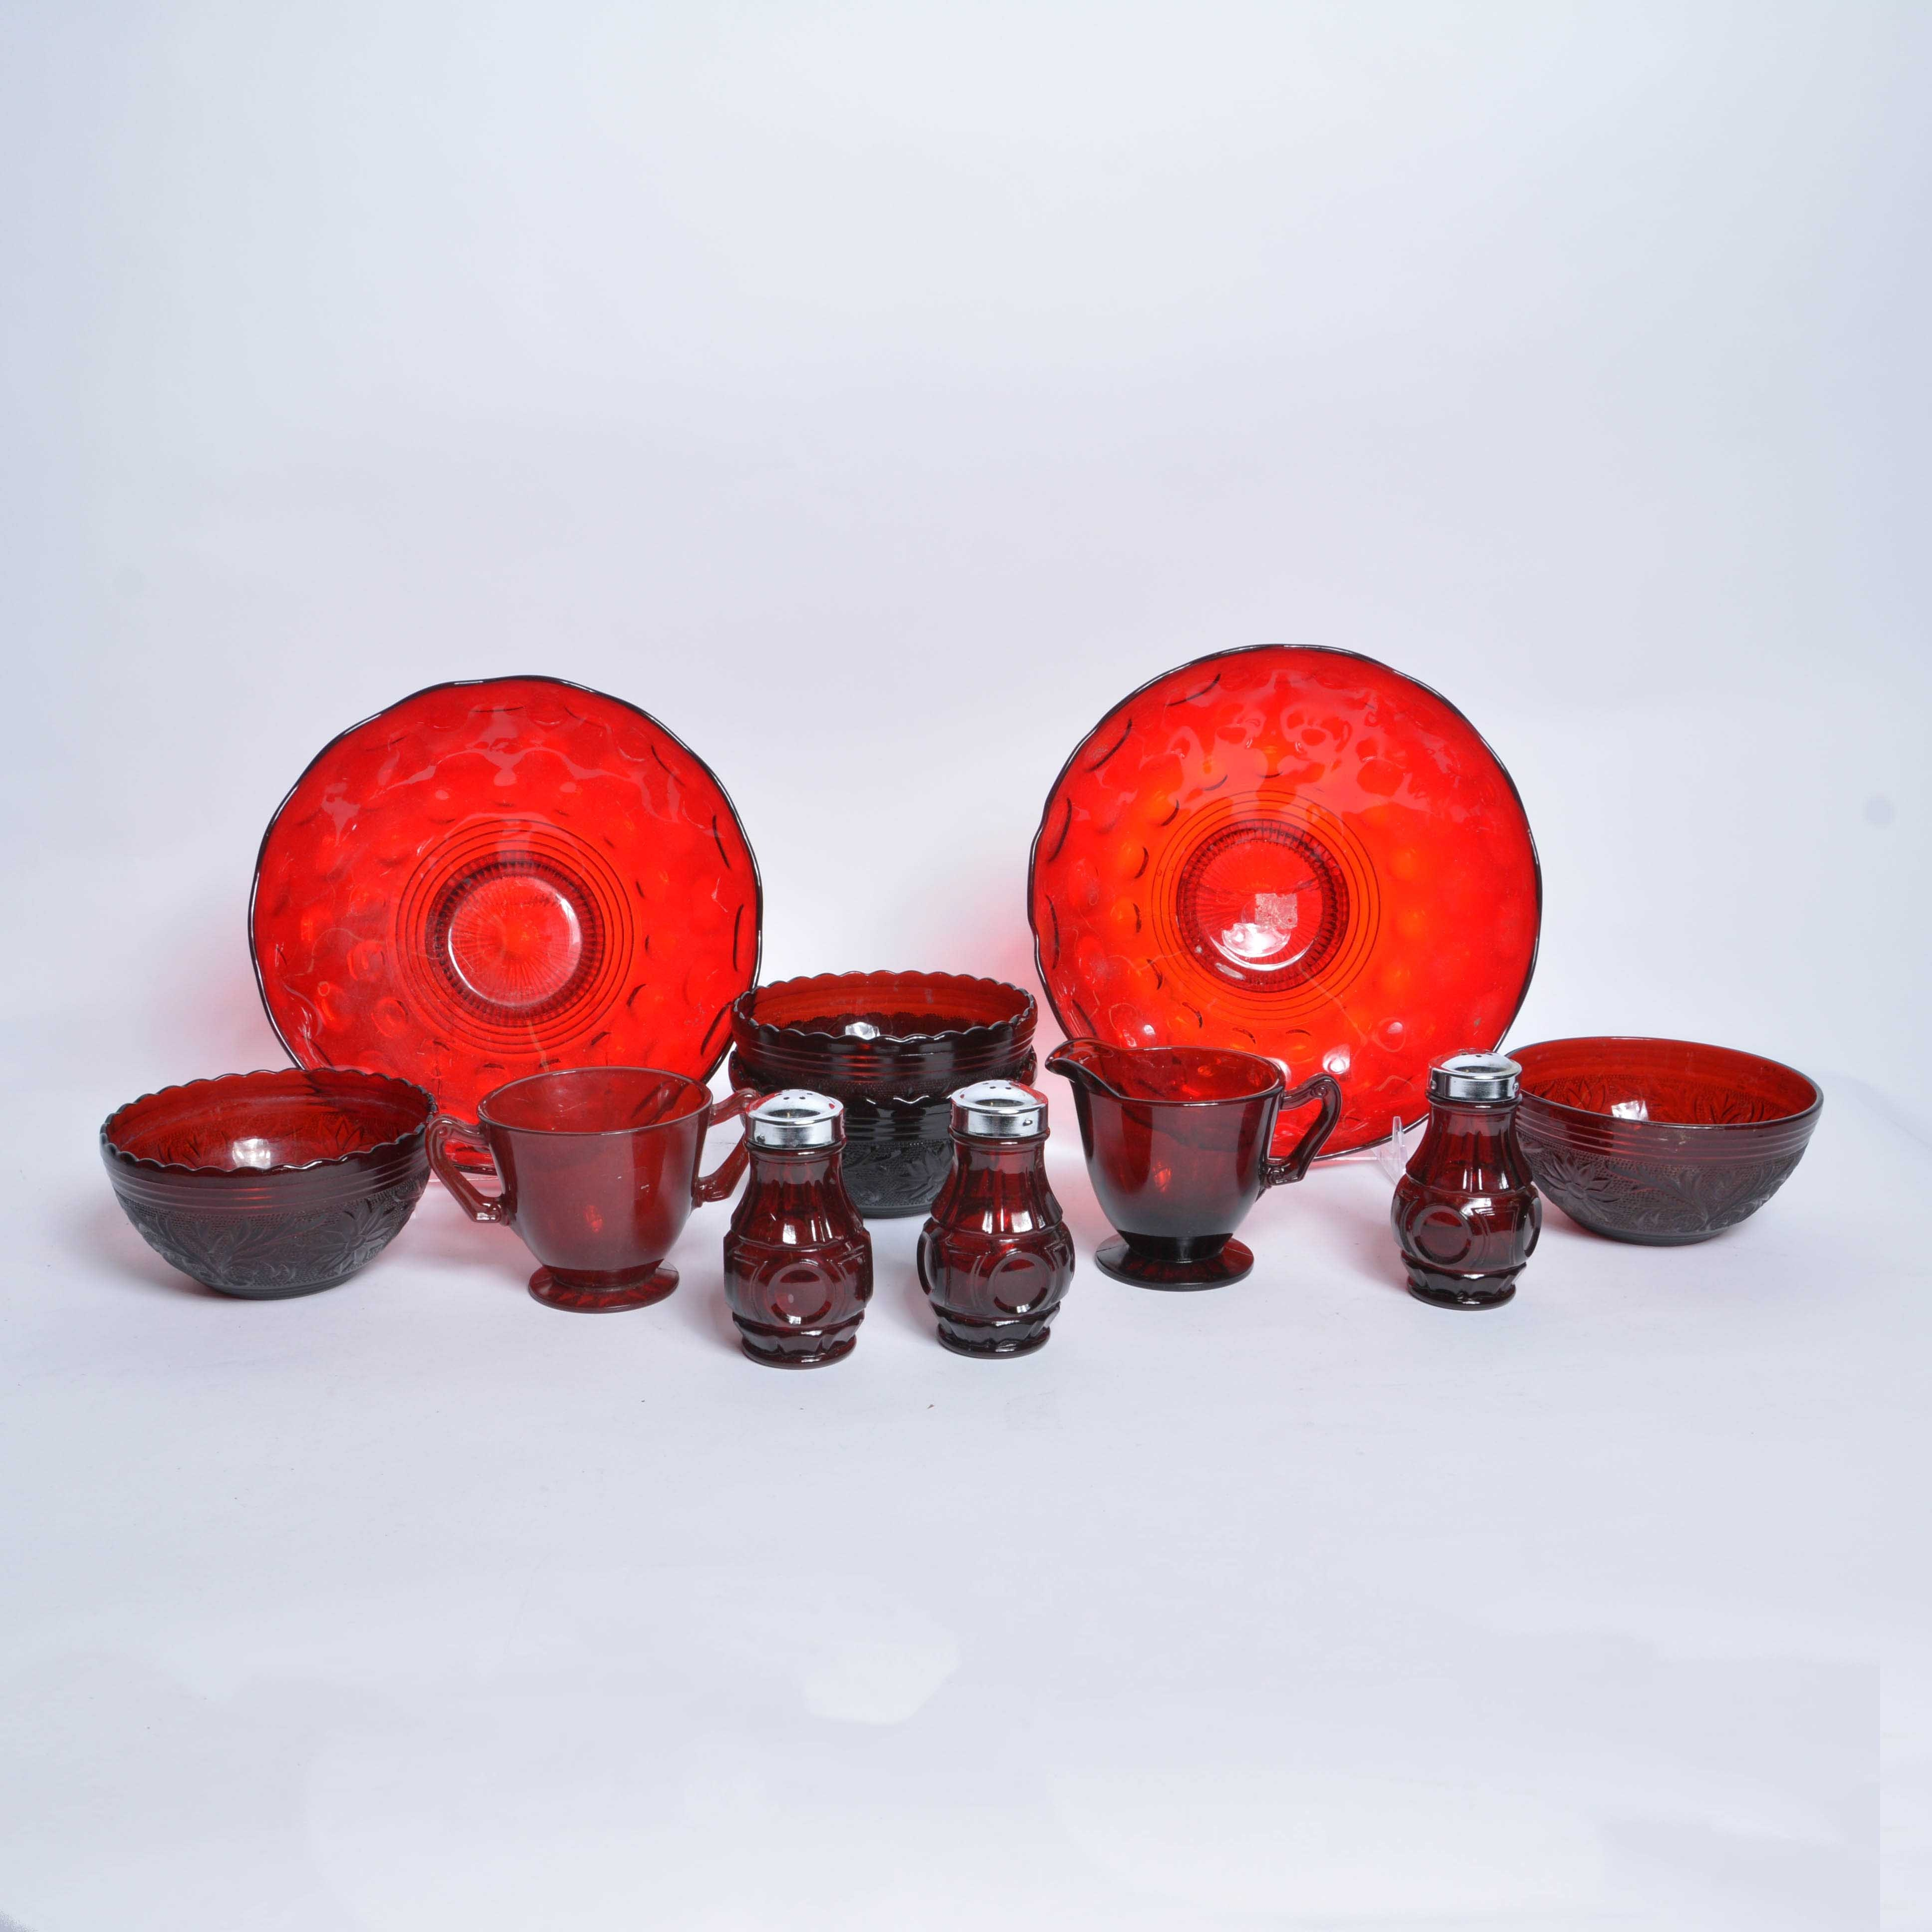 Assortment of Red Depression Glass